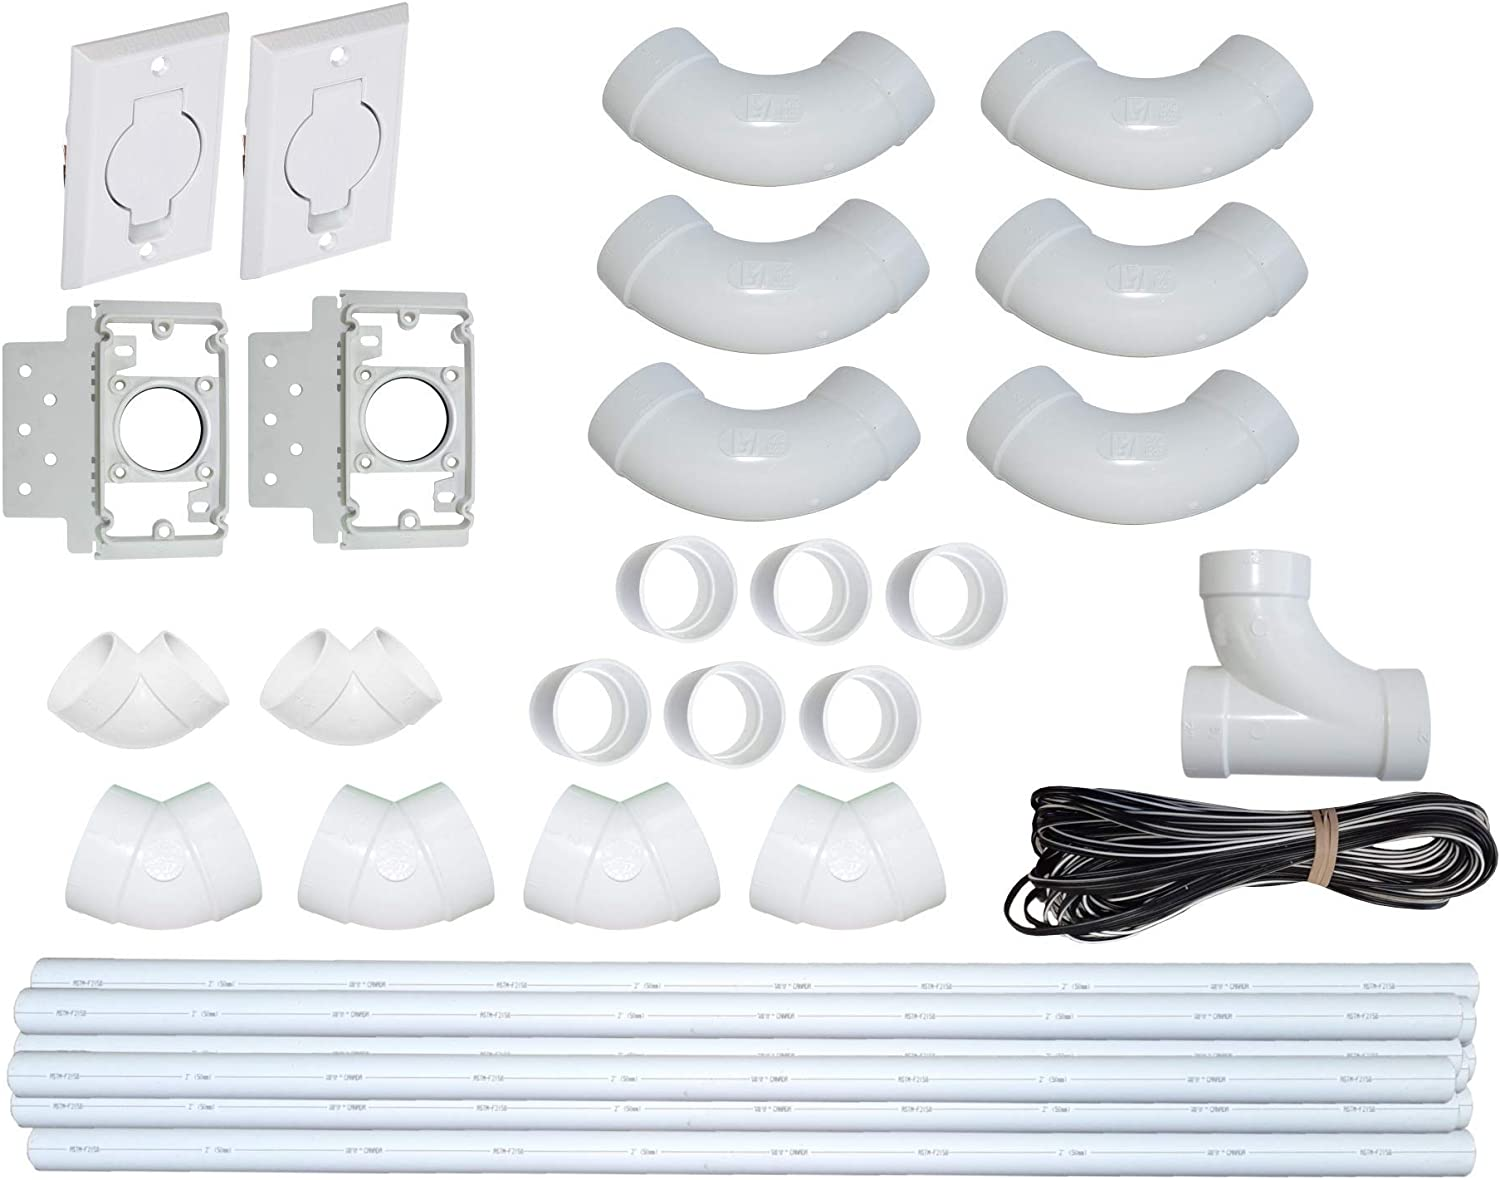 ZVac Central Vacuum Pipe & Inlet Installation Kit with 50 Feet of Pipes & Wires Pre-Packaged with Wall Plates, Elbows, Brackets, Couplers & Sweep Ts Compatible with Central Vacuum NuTone, Beam & More